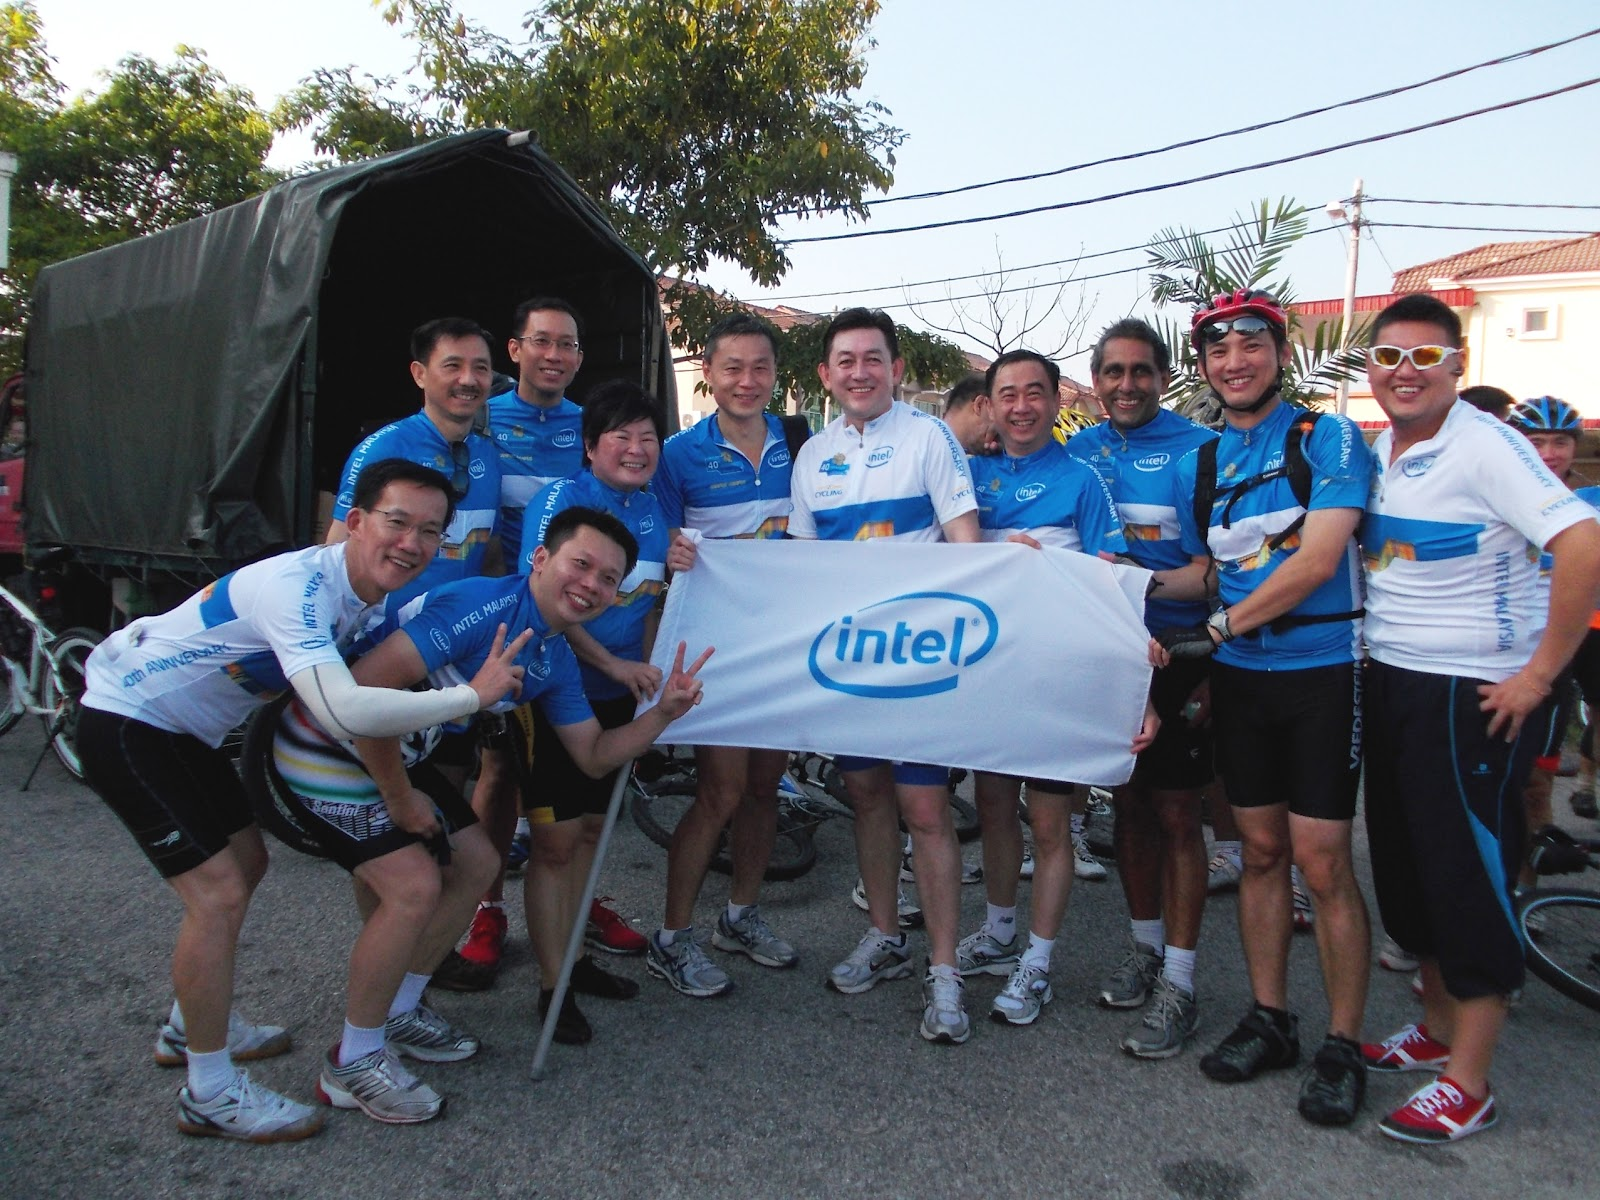 Cool Running: My first long ride - Intel Malaysia 40th